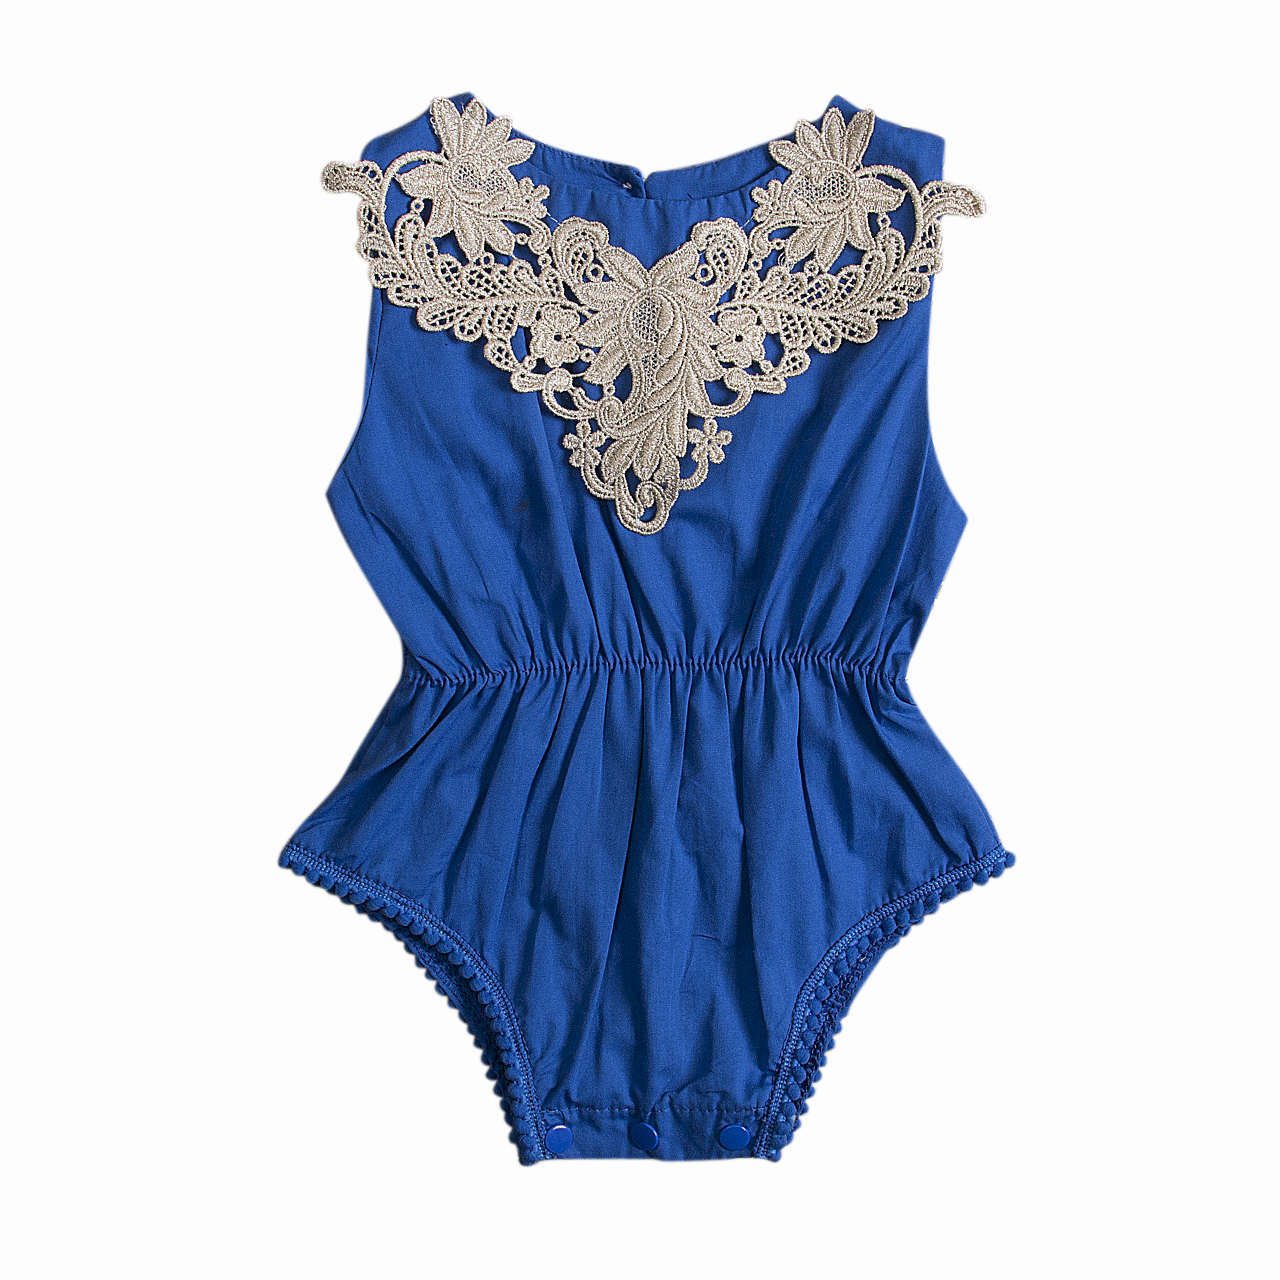 Newborn Infant Baby Girls Lace Tassel Romper Jumpsuit Cotton Sunsuit Playsuit Kids Girls One-Pieces Clothes Summer Outfits newborn infant baby girl clothes strap lace floral romper jumpsuit outfit summer cotton backless one pieces outfit baby onesie